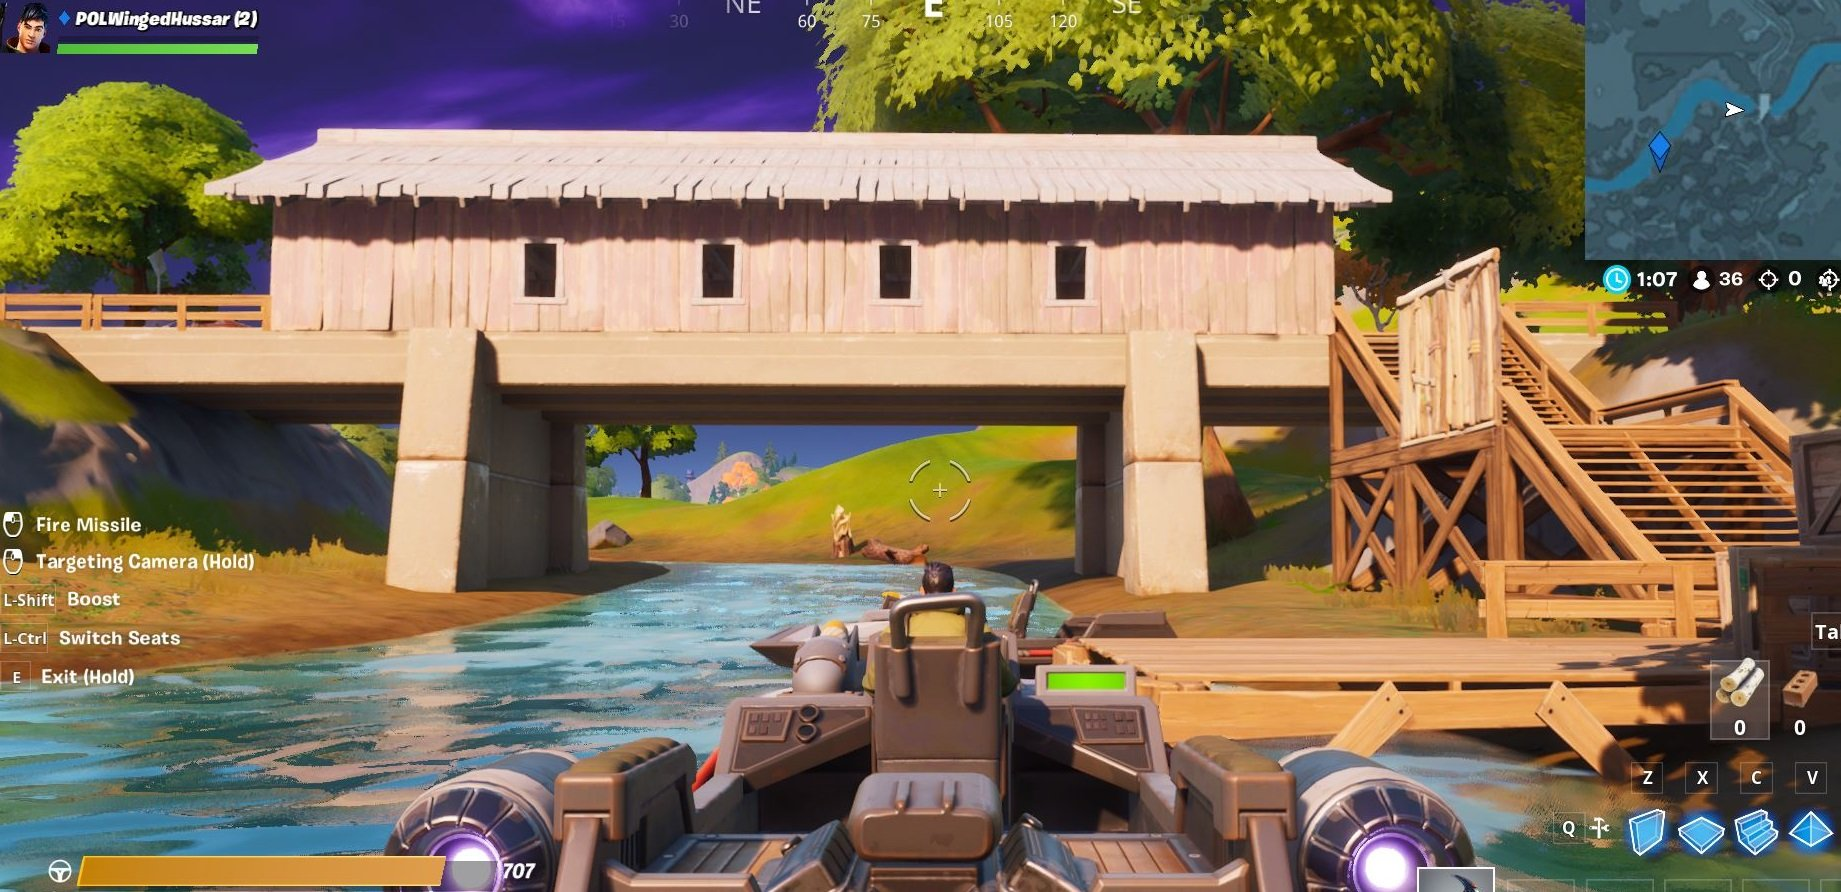 Boats can typically be found near bridges, like this wood bridge near the center of the Fortnite Chapter 2 map.